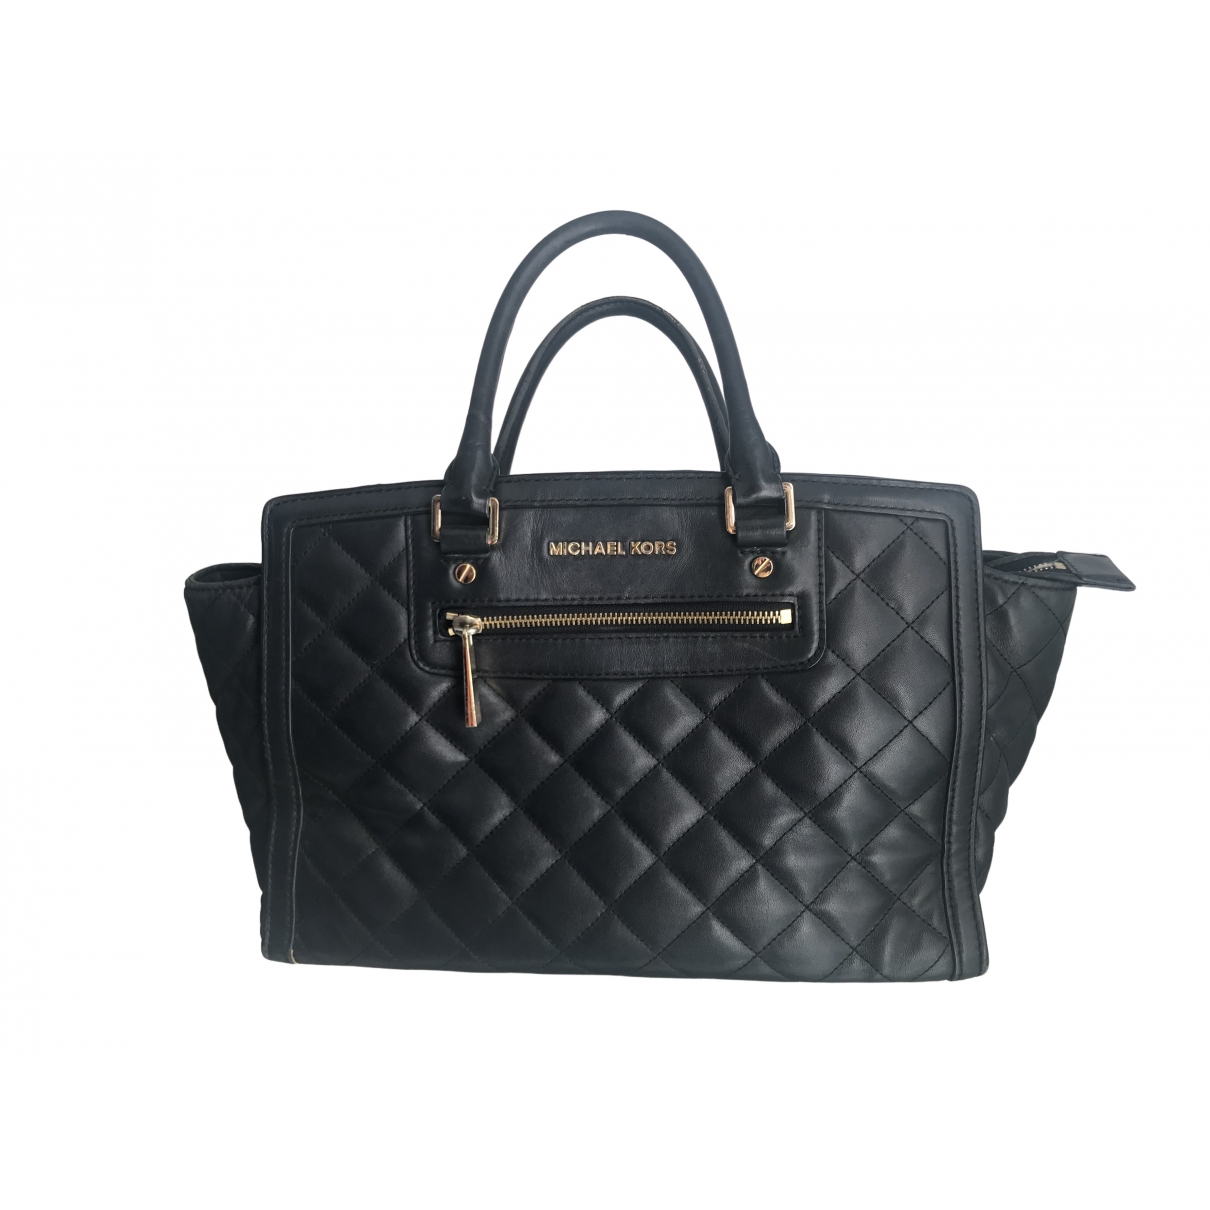 Michael Kors Selma Black Leather handbag for Women \N